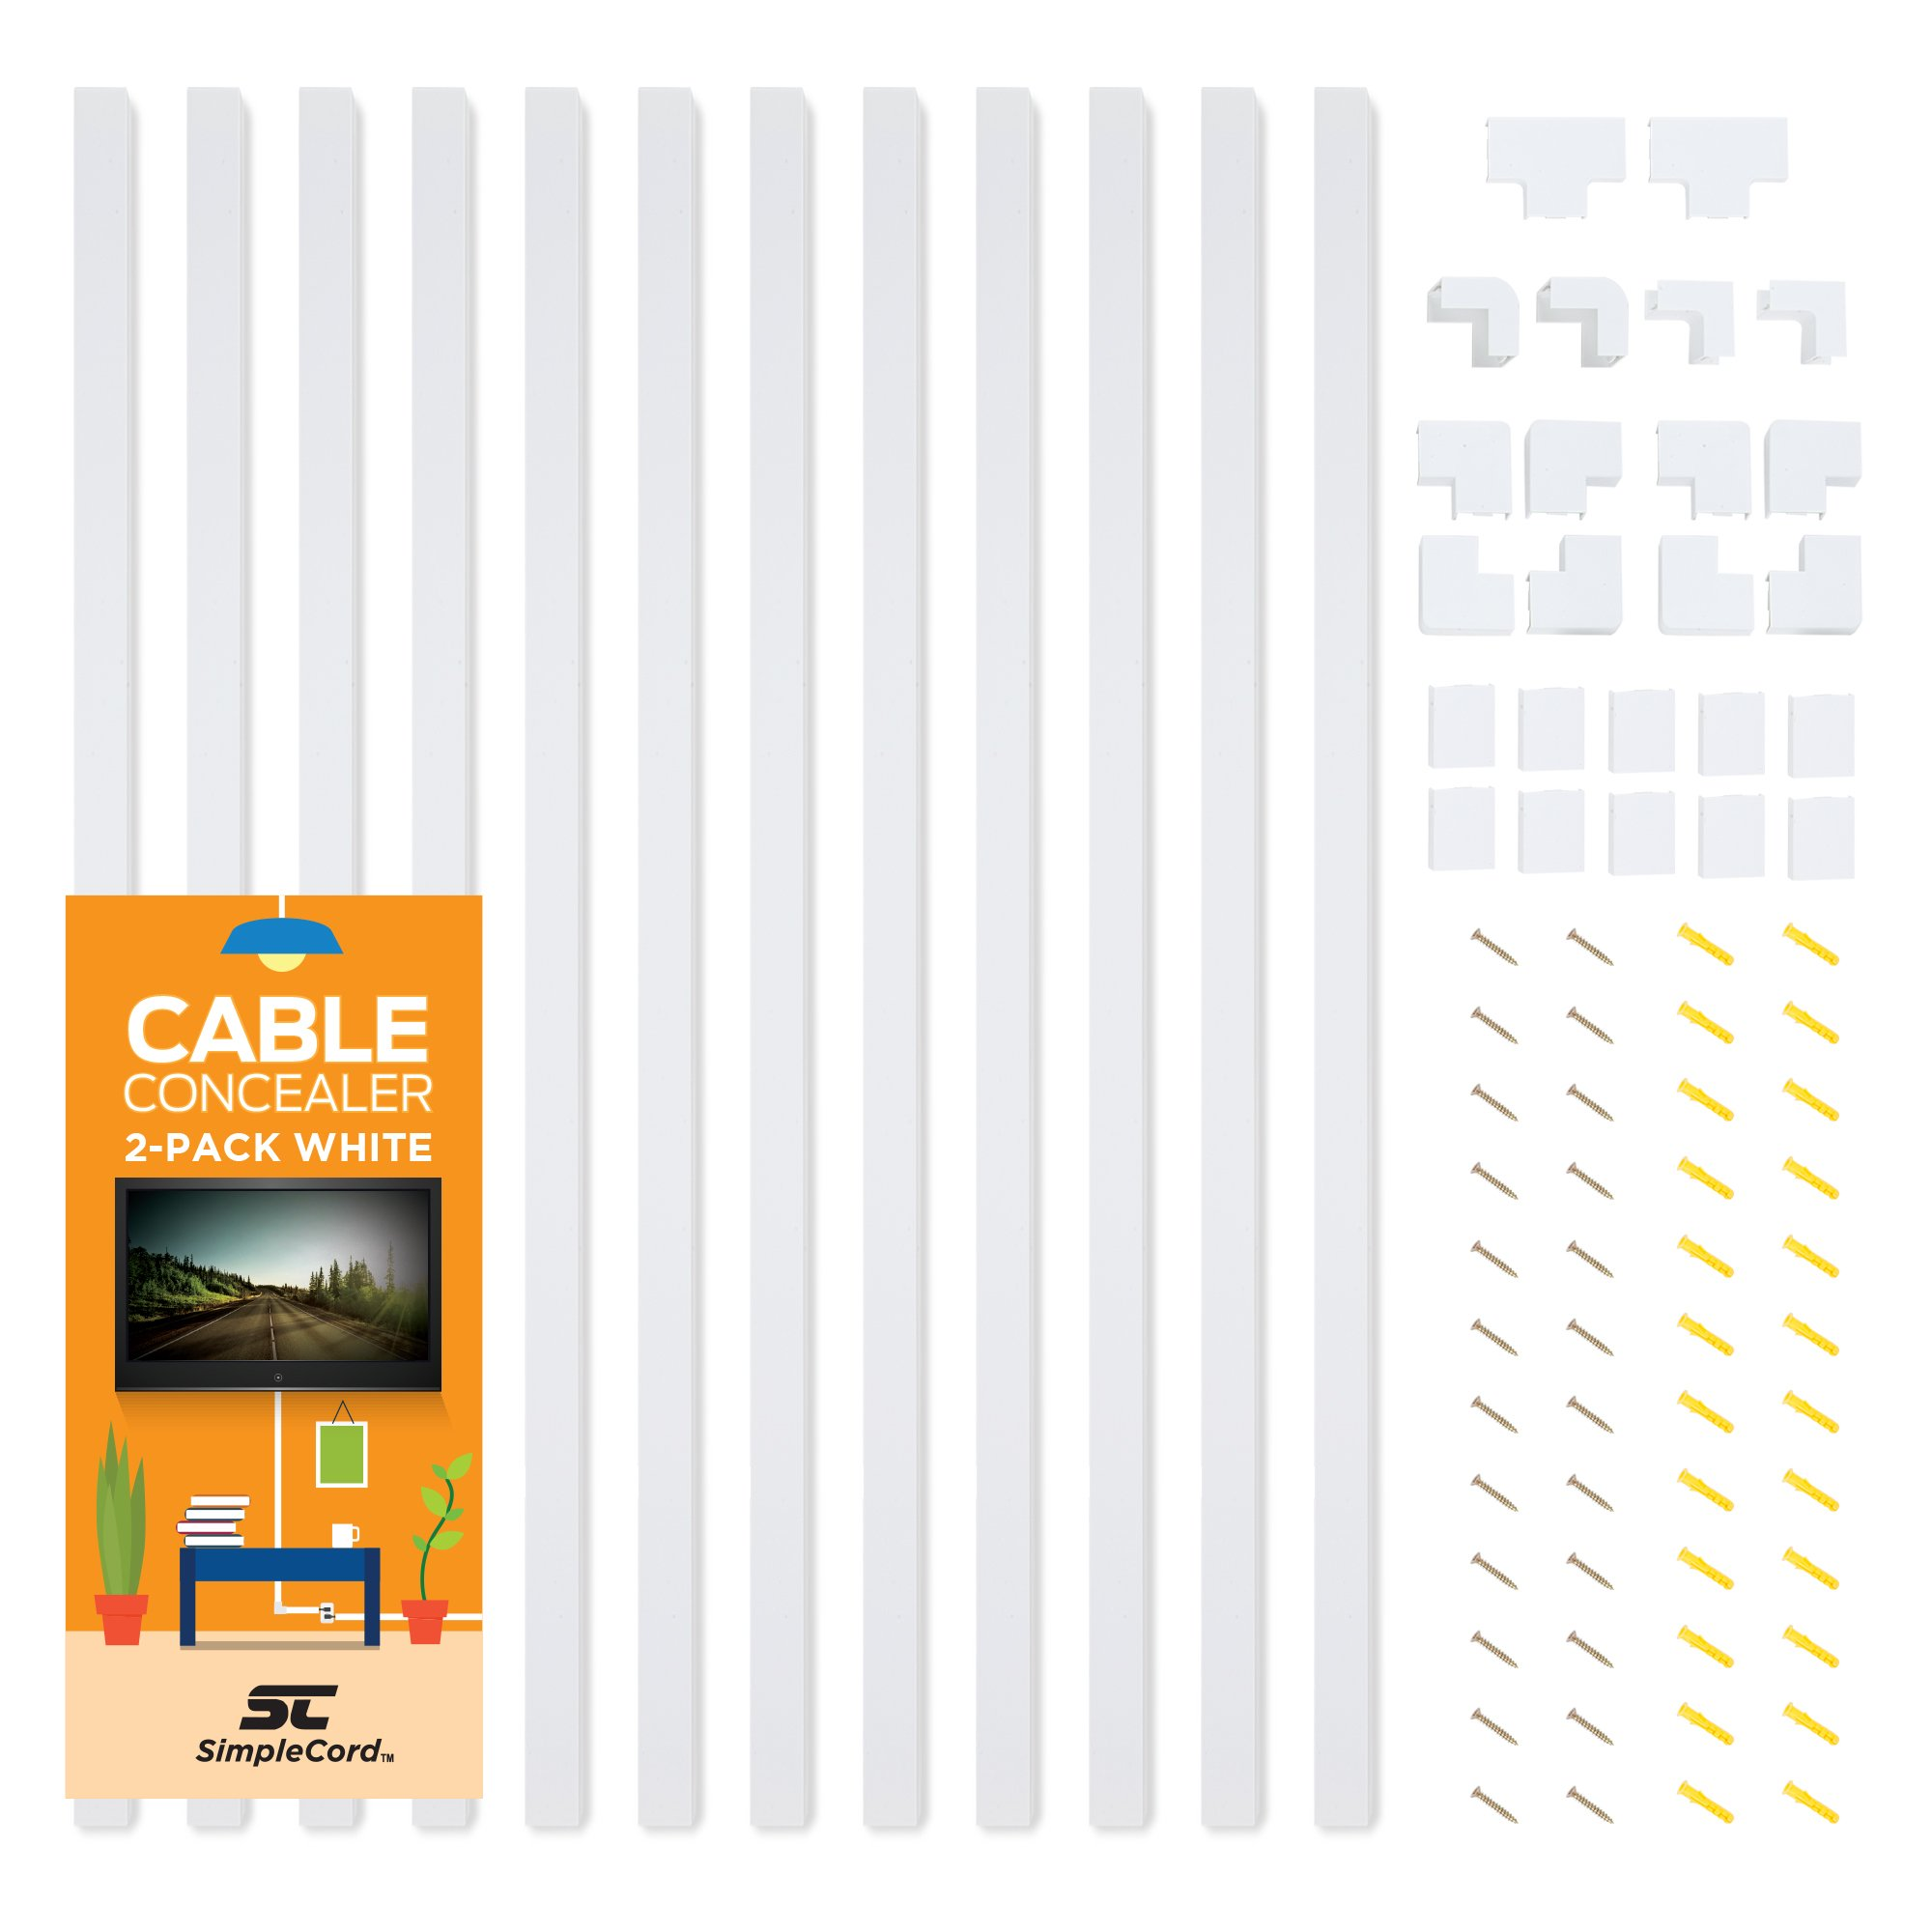 Cable Concealer On-Wall Cord Cover Raceway Kit - 12 White Cable Covers - Cable Management System to Hide Cables, Cords Wires - Organize Cables to TVs Computers at Home in The Office